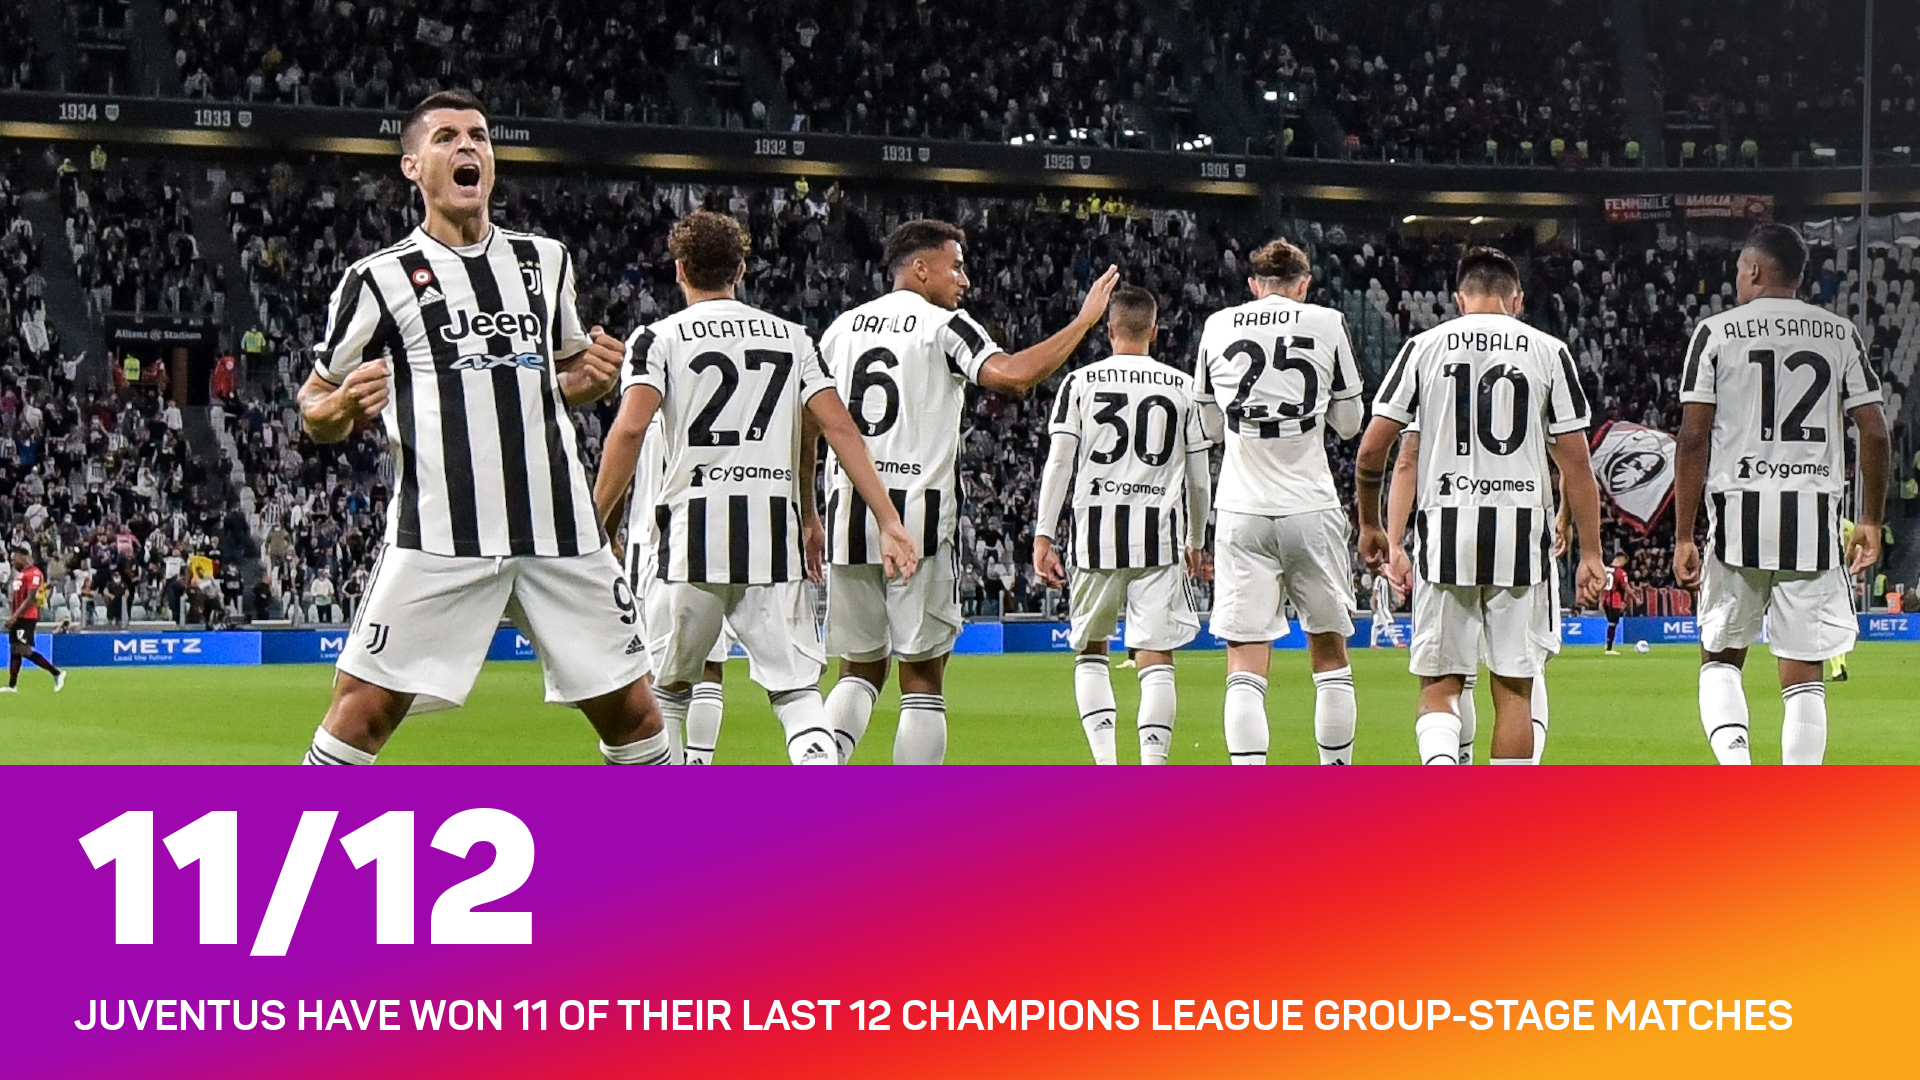 Juventus have won 11 of their last 12 Champions League group-stage matches